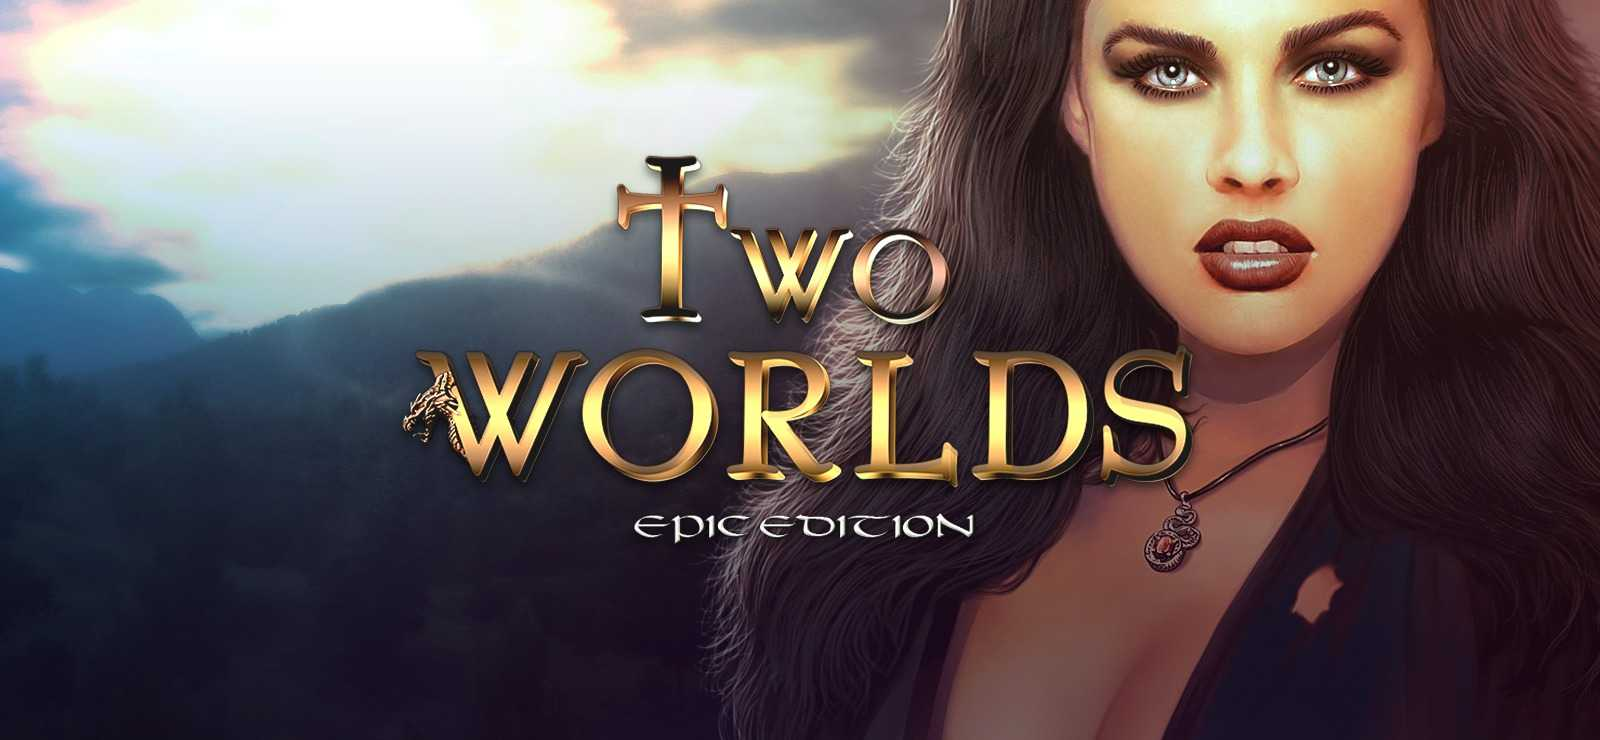 two-worlds-epic-edition